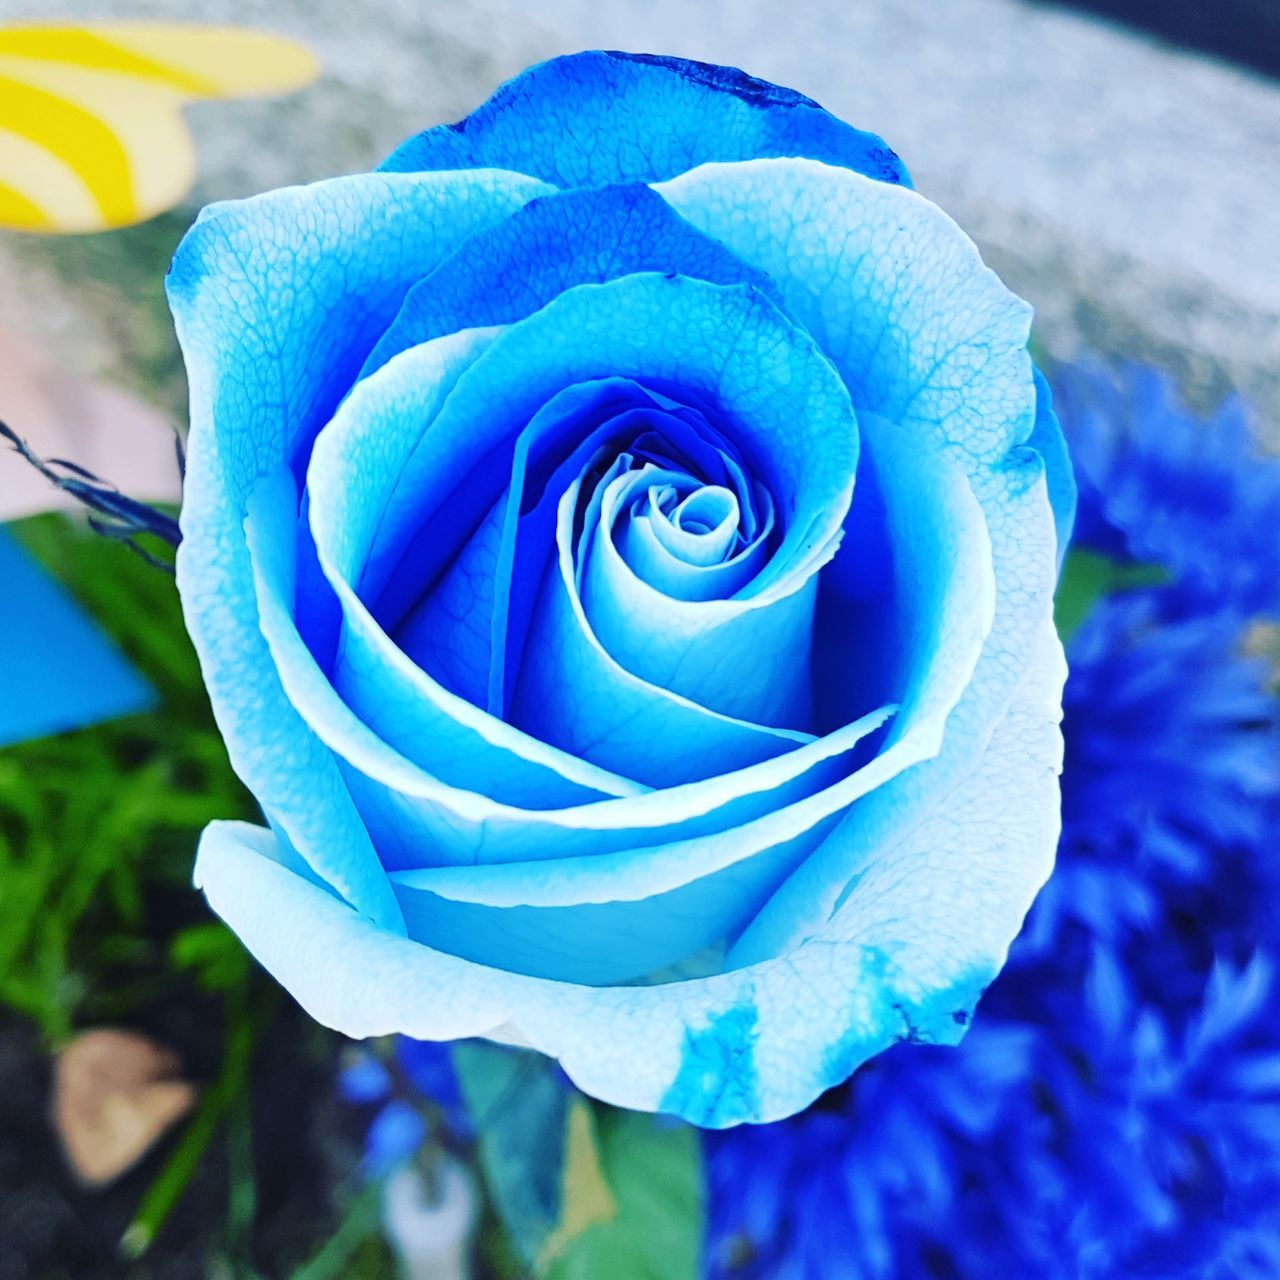 flower, petal, rose - flower, beauty in nature, nature, flower head, fragility, freshness, growth, plant, close-up, botany, blossom, no people, outdoors, blue, blooming, springtime, leaf, day